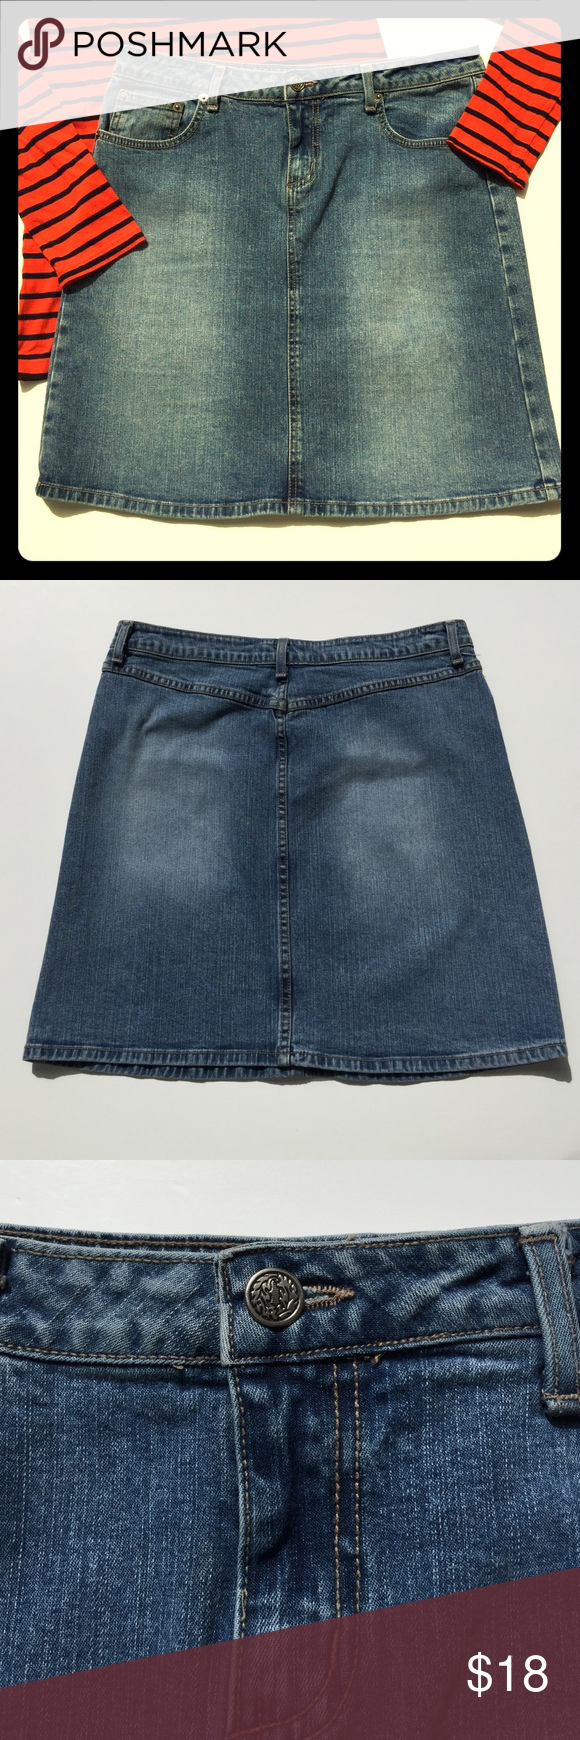 "Forever 21 Denim Skirt Great condition, basic denim mini skirt. Overall length 18"". Endless possibilities! Endless seasons! Forever 21 Skirts Mini"